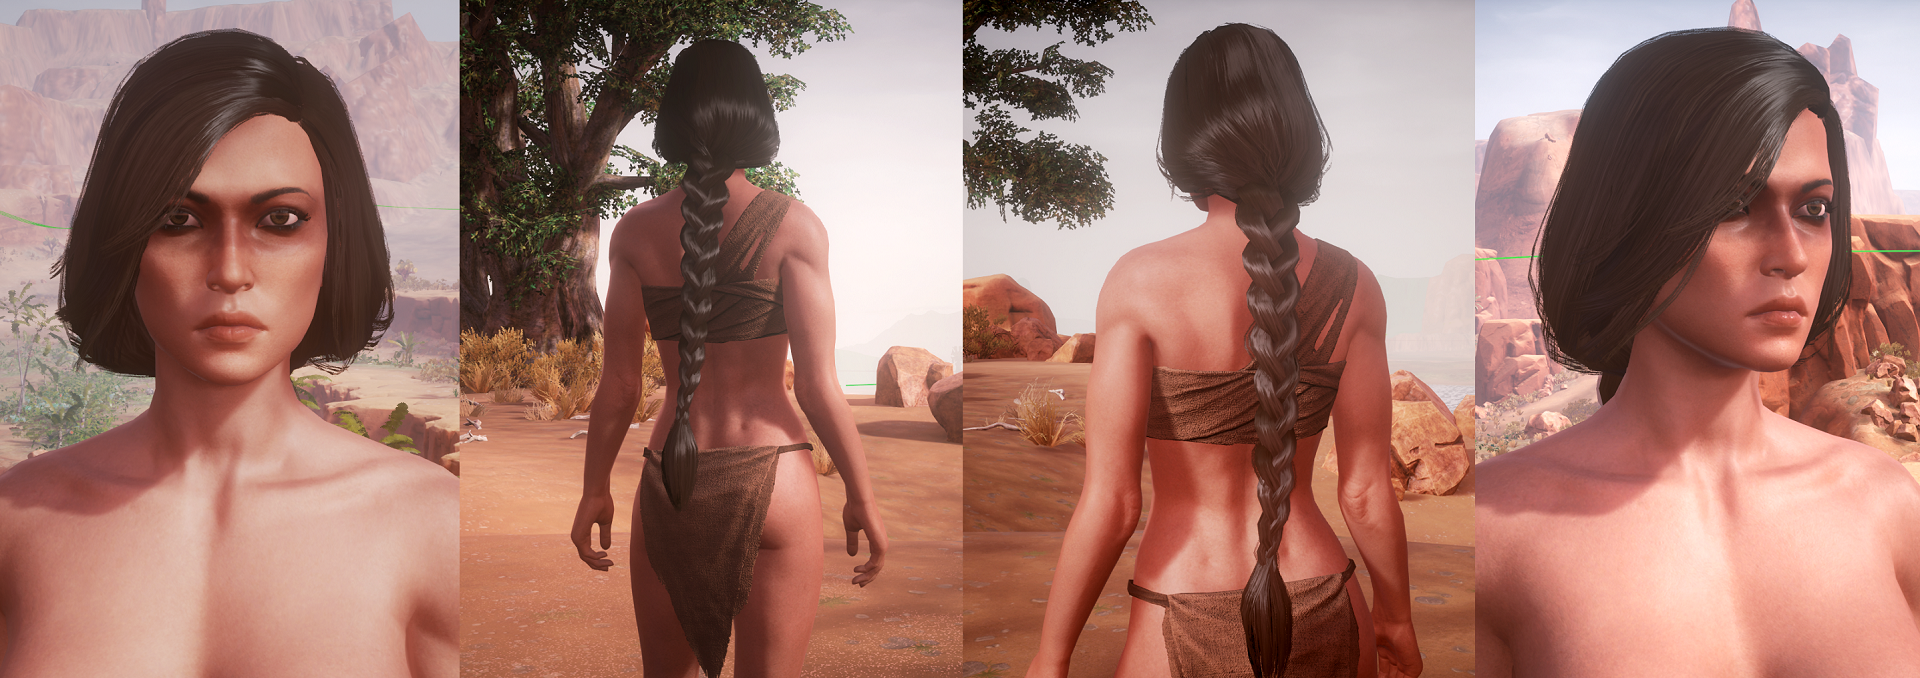 Conan-Exiles-nudity 00